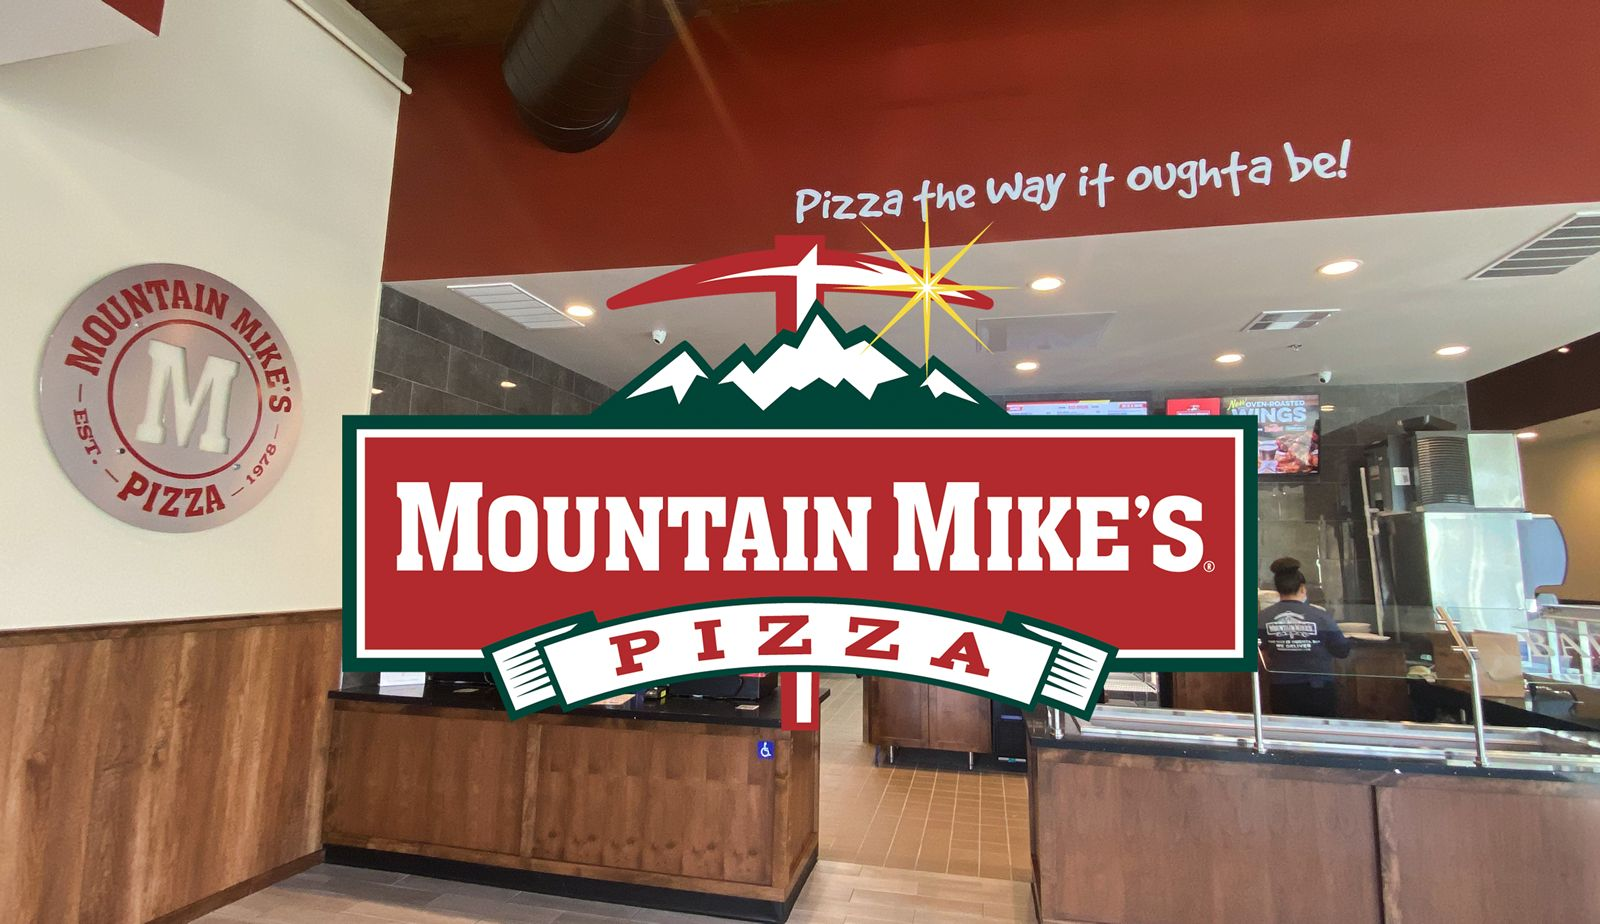 Emplacement New Highland de Mountain Mike's Pizza